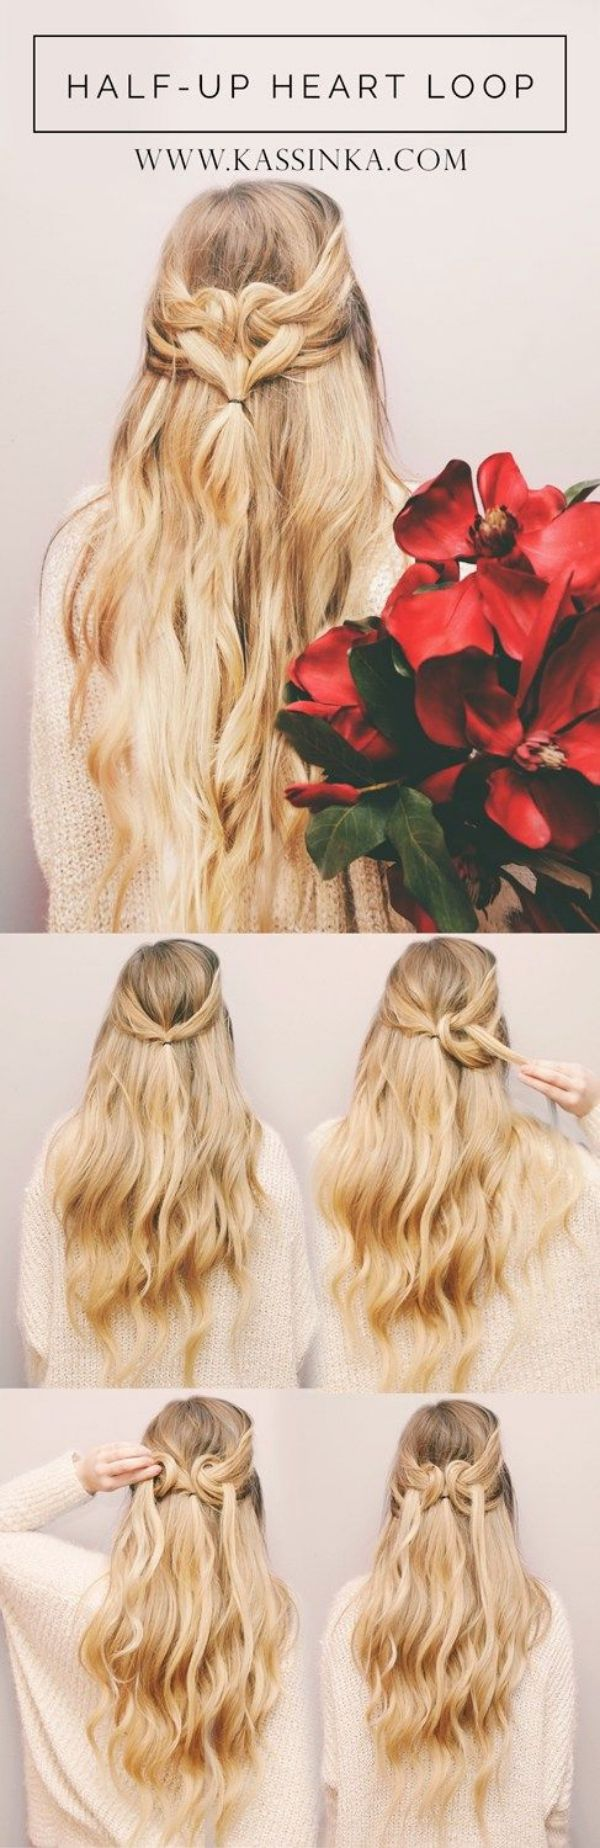 25 unique simple hairstyles ideas on pinterest hair simple 25 unique simple hairstyles ideas on pinterest hair simple styles simple hair updos and cute simple hairstyles urmus Image collections